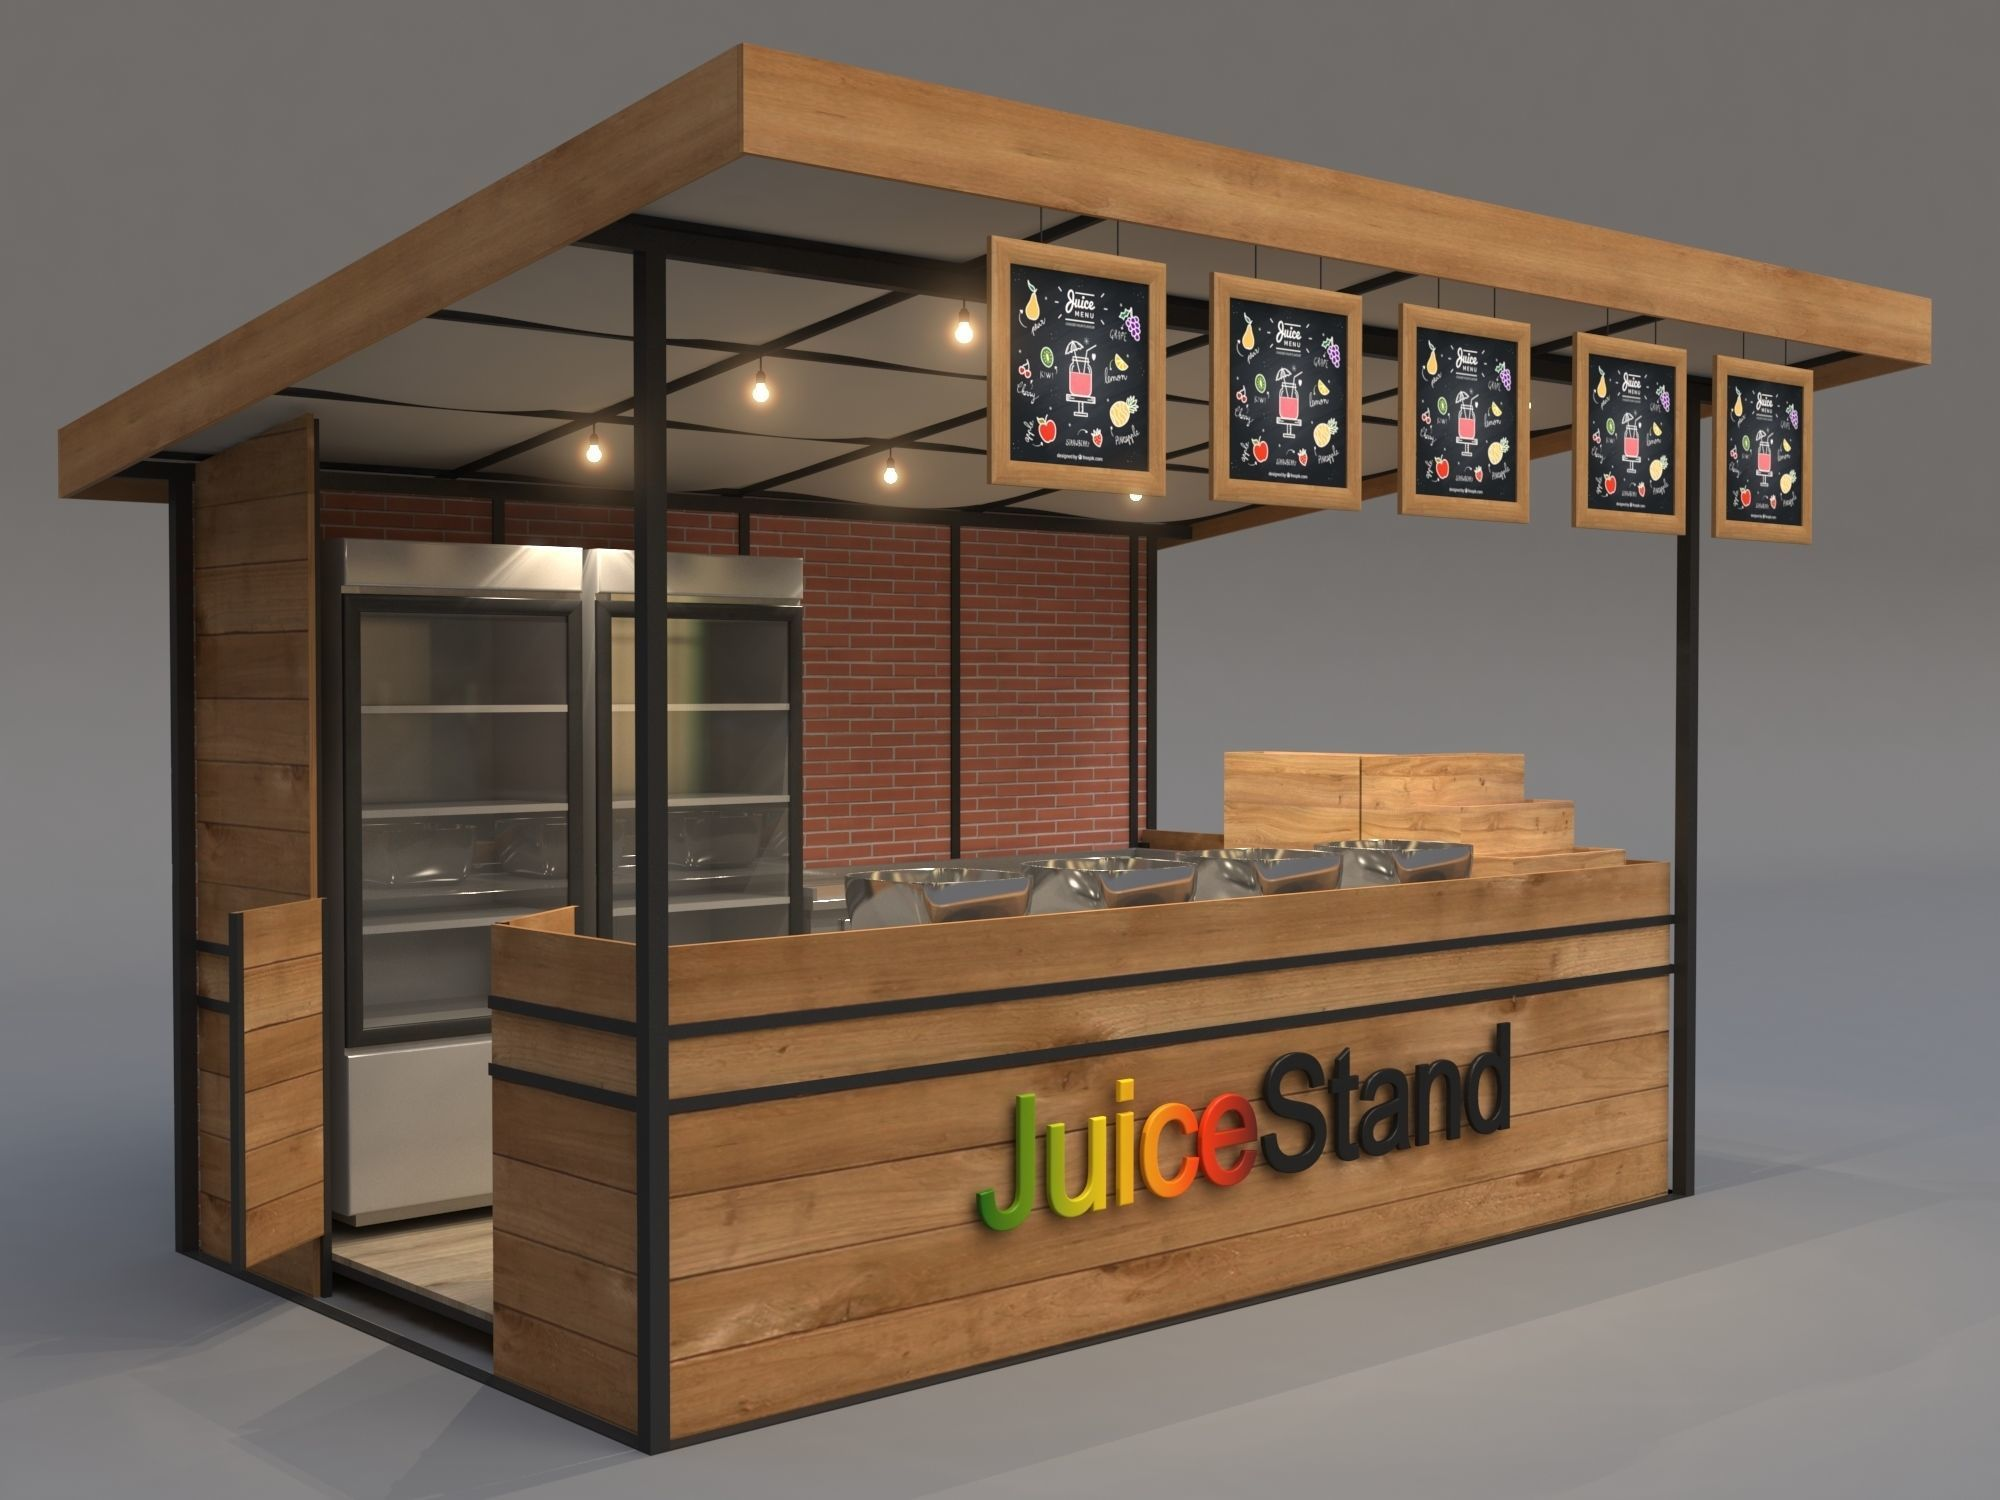 Juice Stand For Outdoor And Indoor Shopping Malls